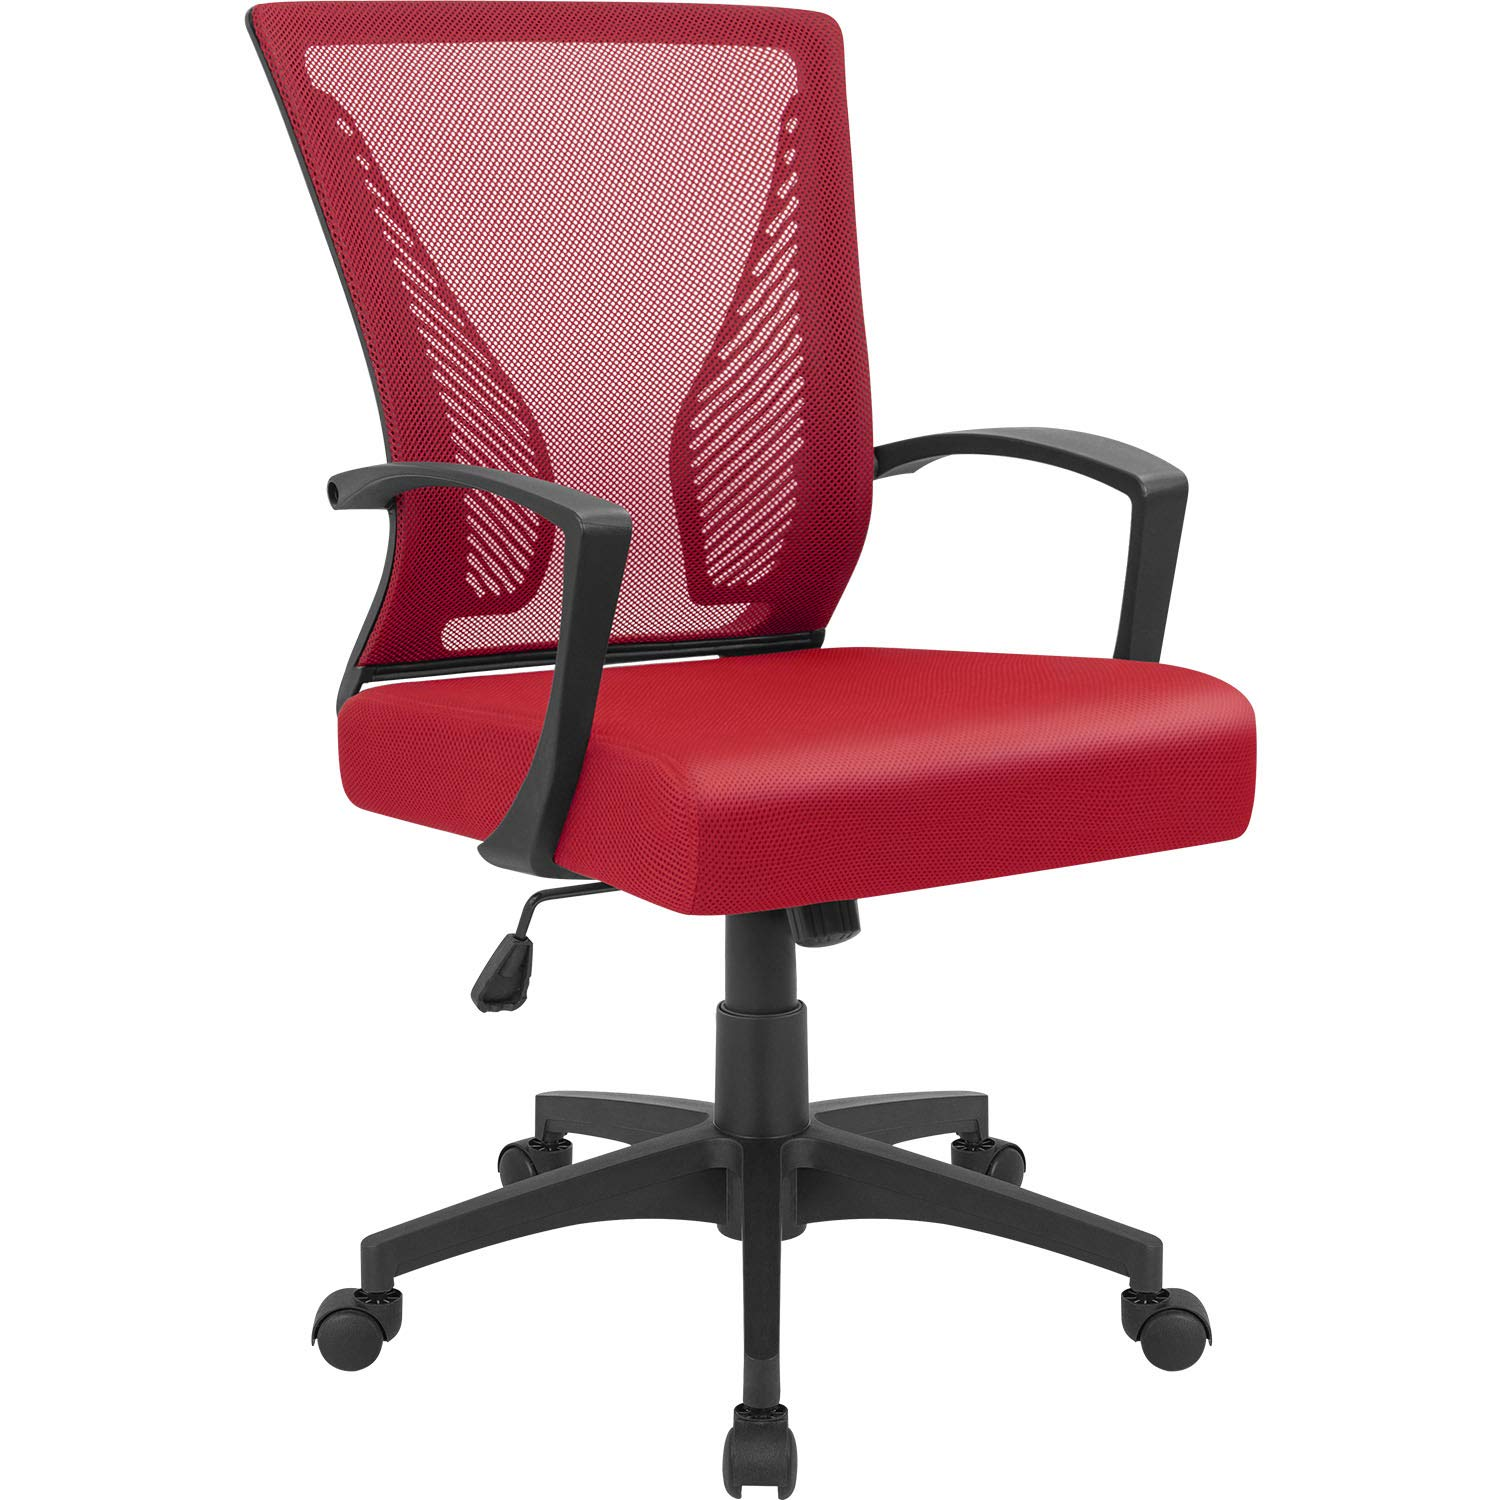 Furmax Office Chair Mid Back Swivel Lumbar Support Desk Chair, Computer Ergonomic Mesh Chair with Armrest (Red)